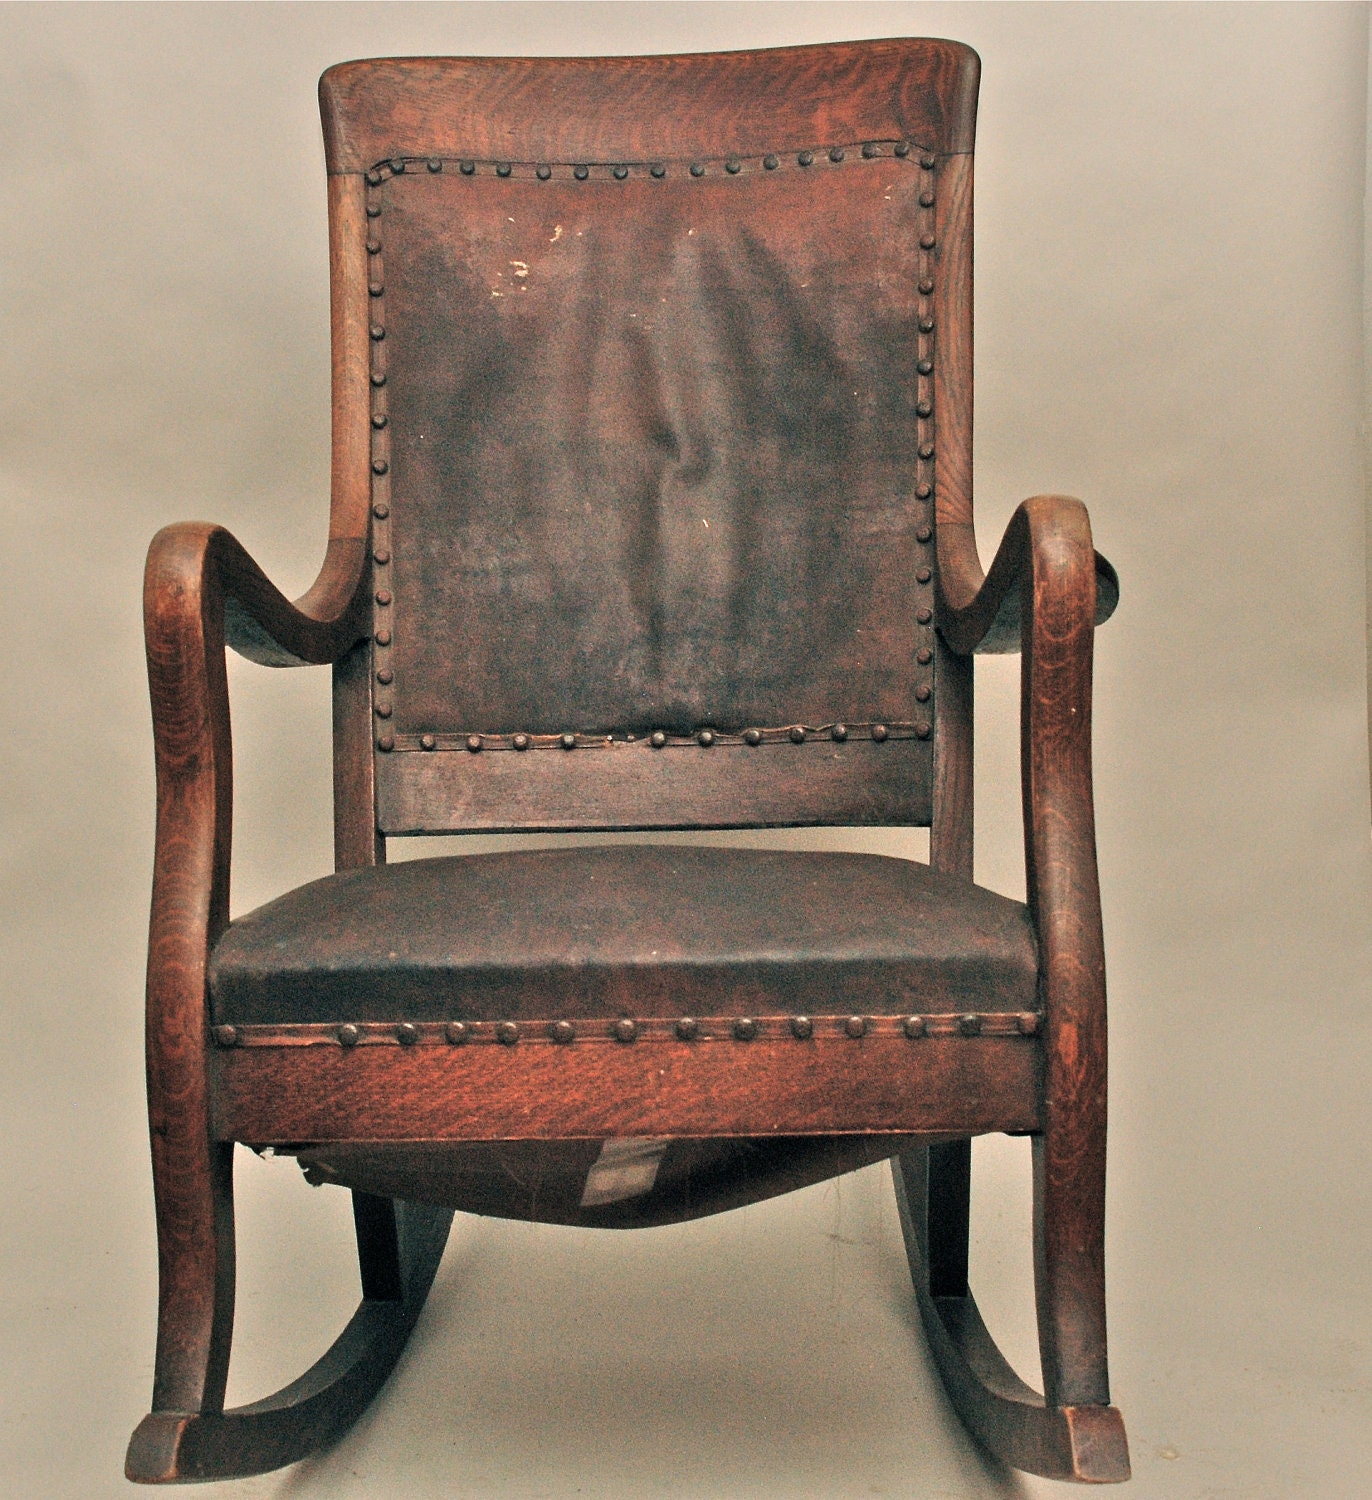 Antique leather rocking chair - Antique High Back Oak Rocking Chair With Leather Seat And Back